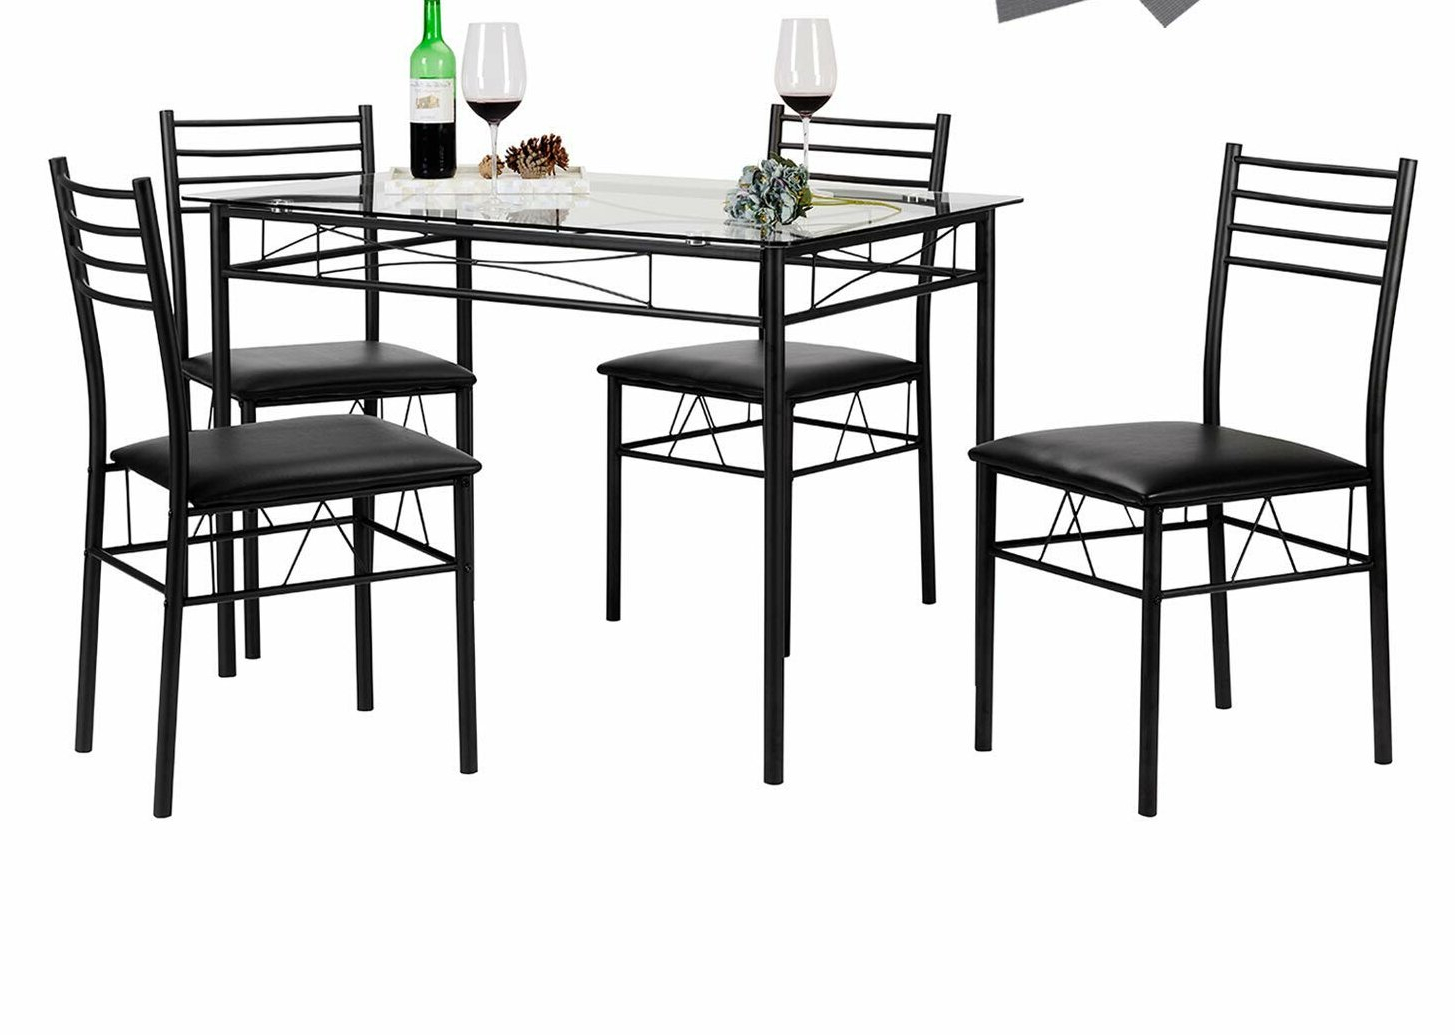 Ebern Designs Lightle 5 Piece Breakfast Nook Dining Set & Reviews For Favorite Liles 5 Piece Breakfast Nook Dining Sets (View 7 of 25)